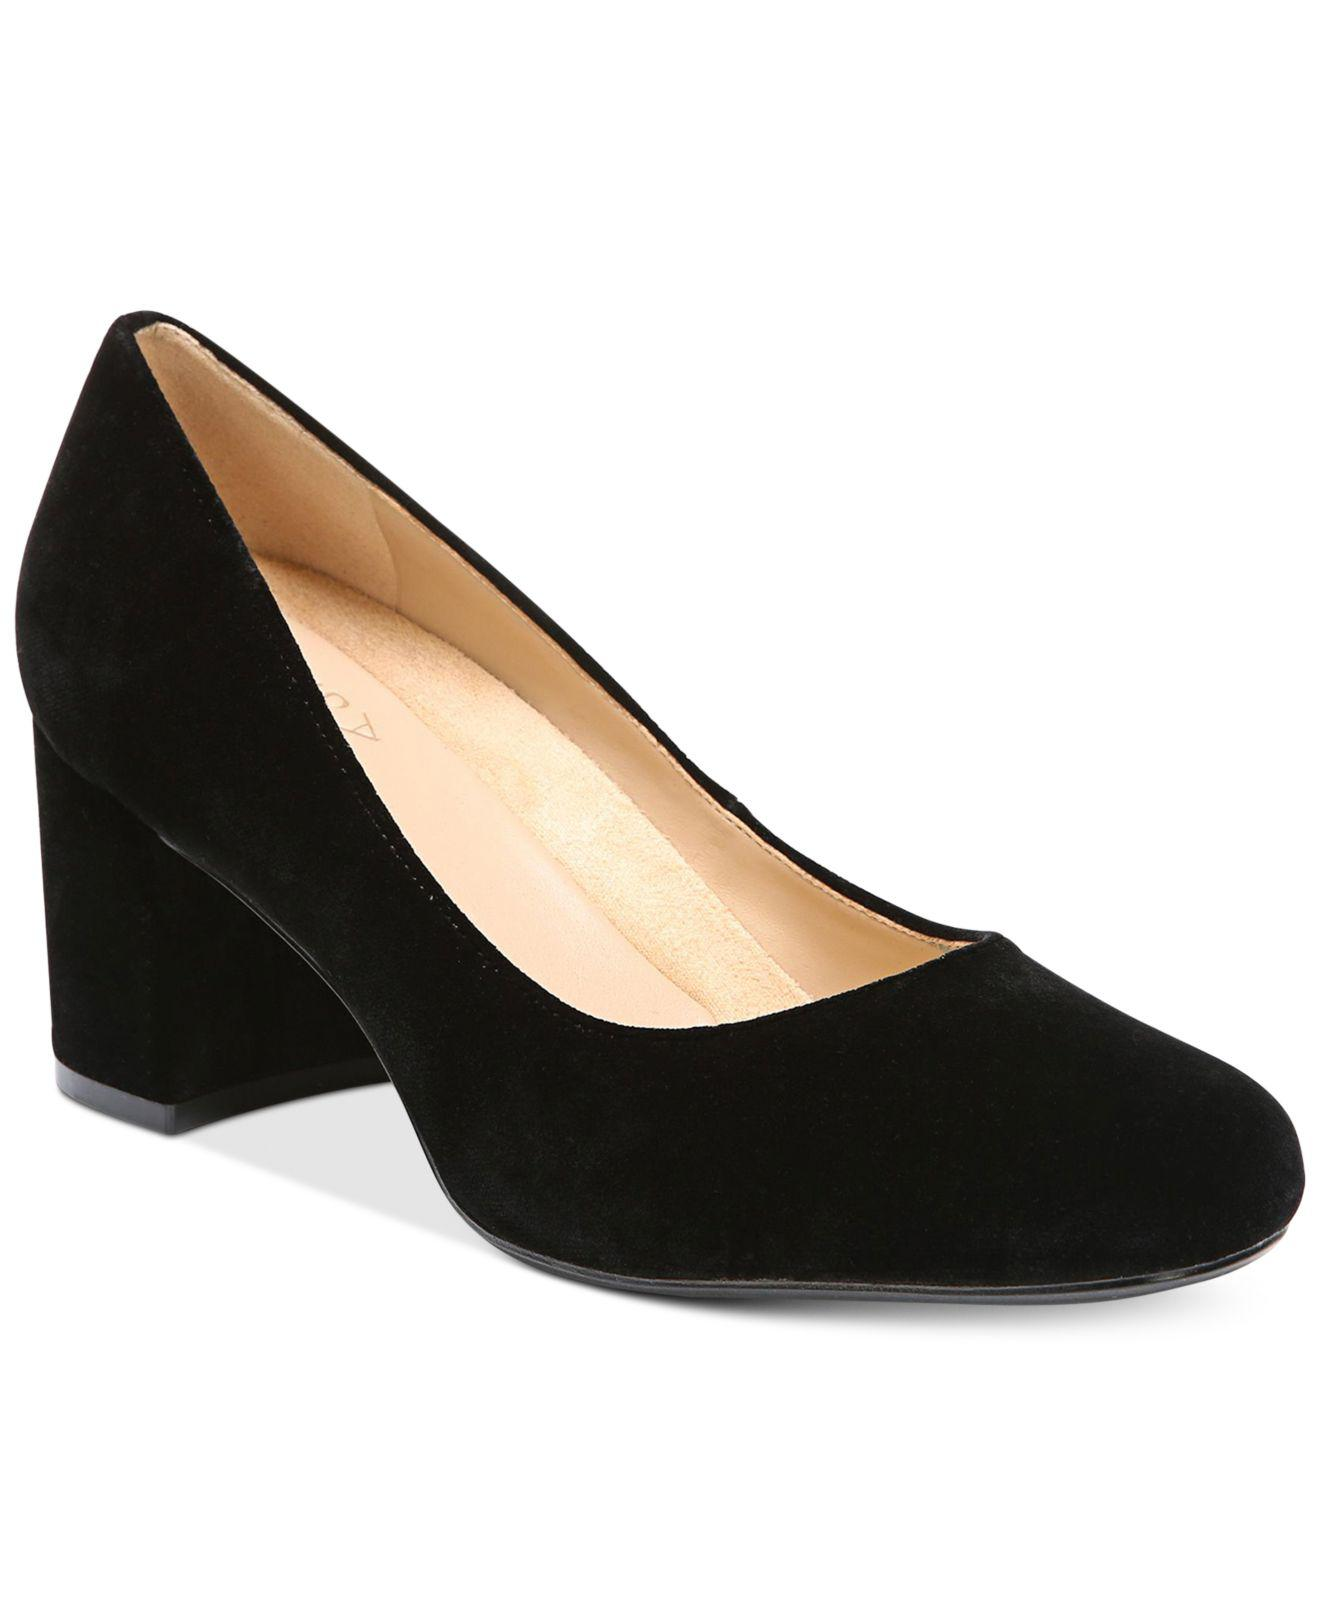 4db762a307e Lyst - Naturalizer Whitney Pumps in Black